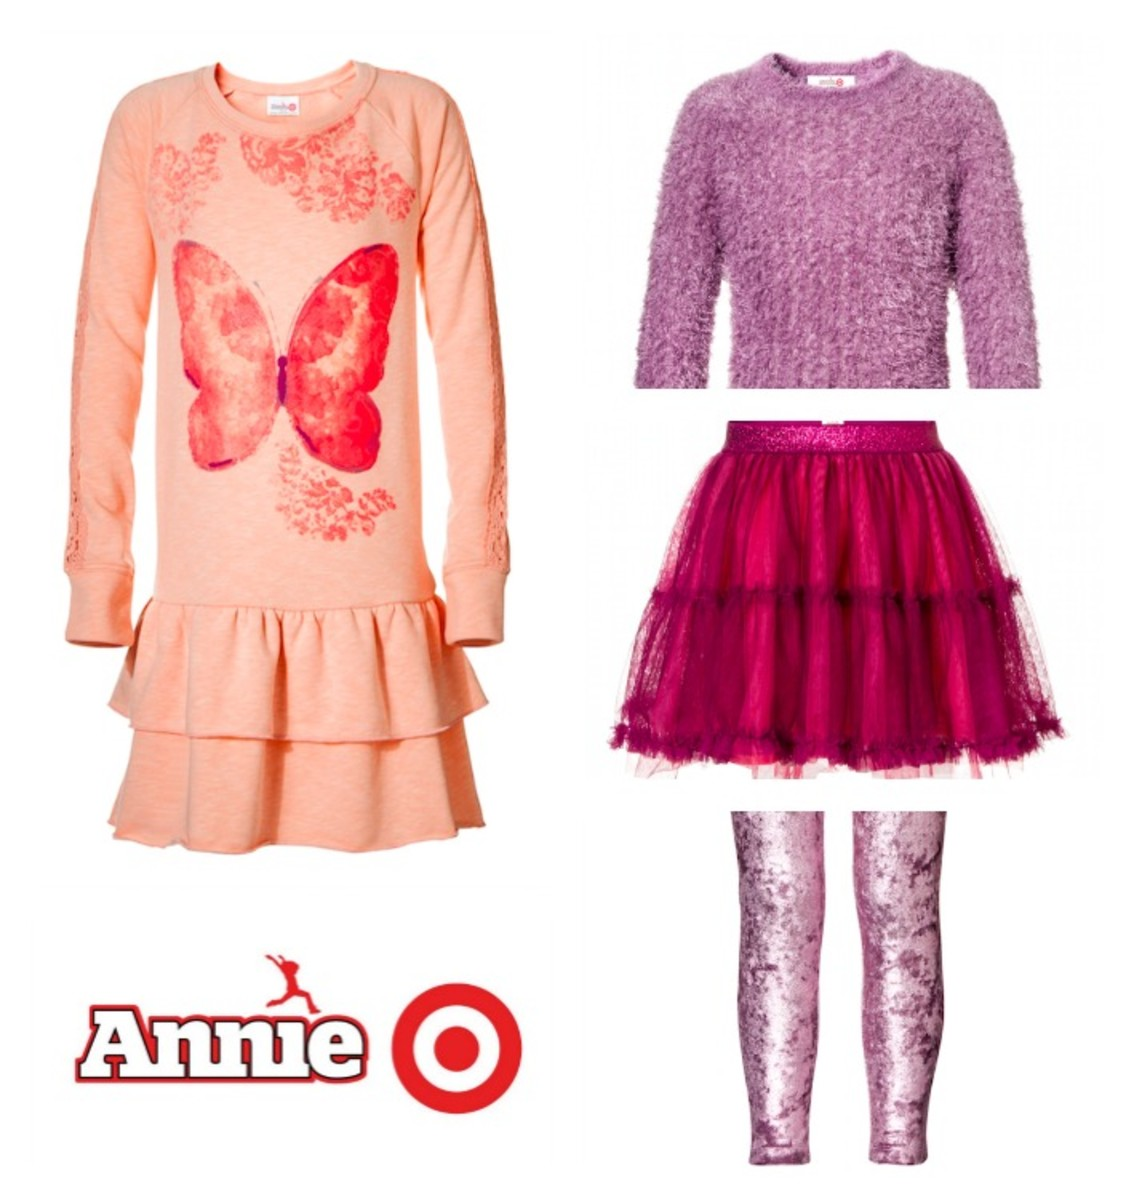 annie for target